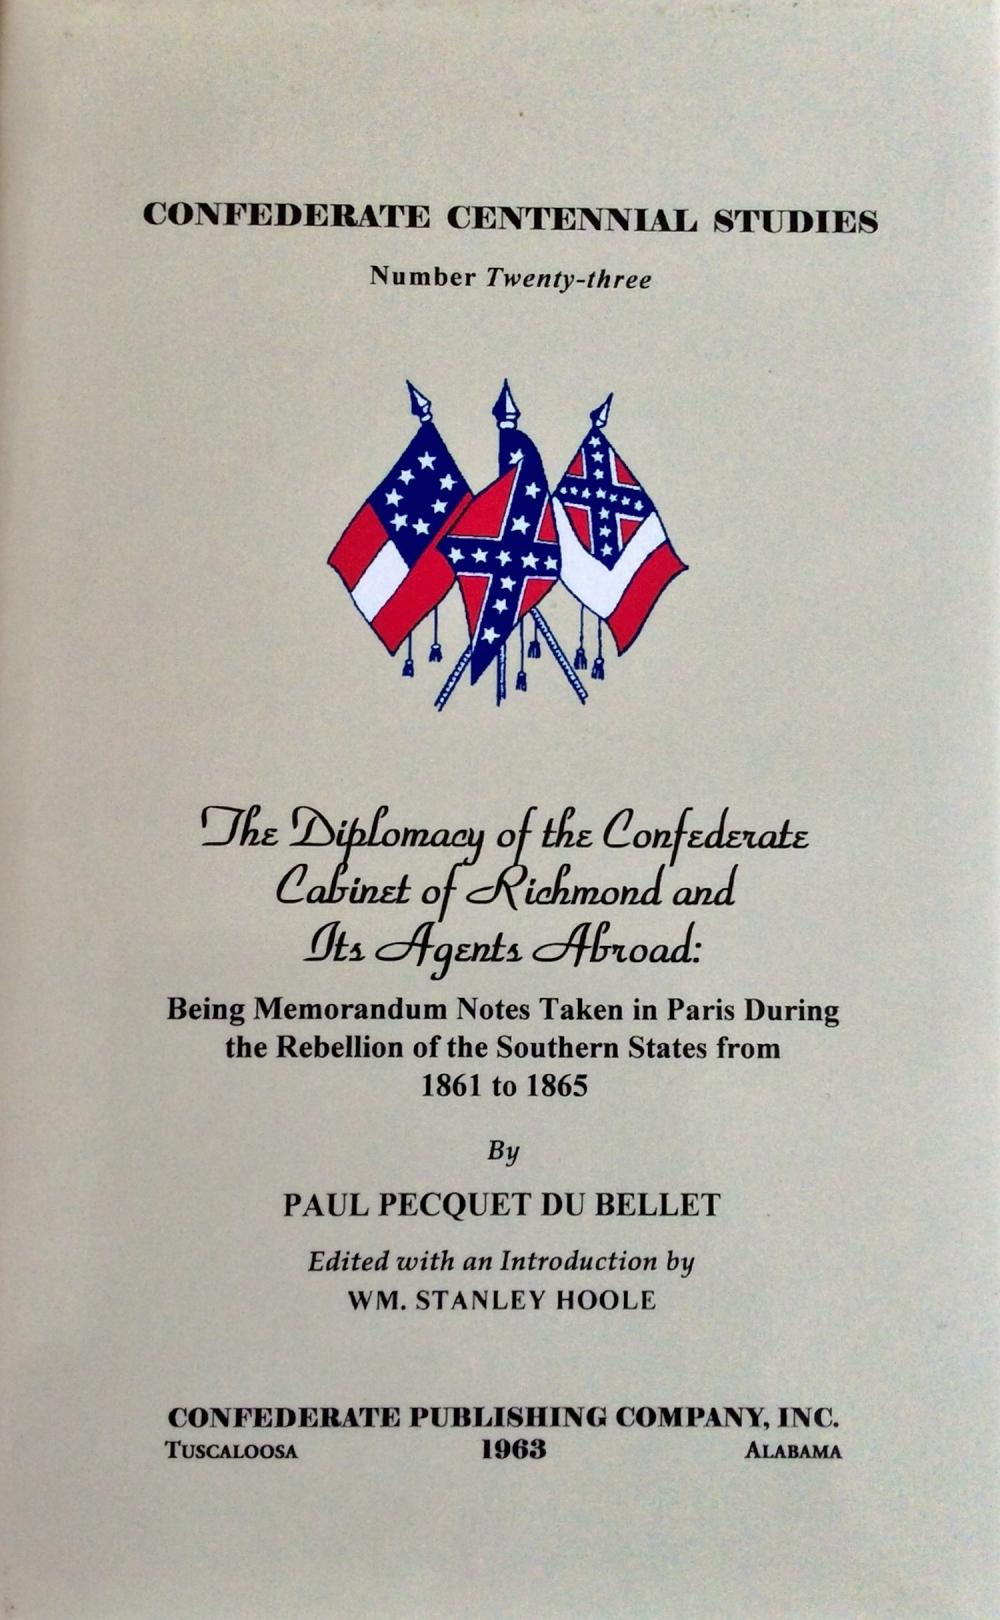 Collectible Limited Edition Hardcover Civil War History in DJ On Confederate Diplomacy